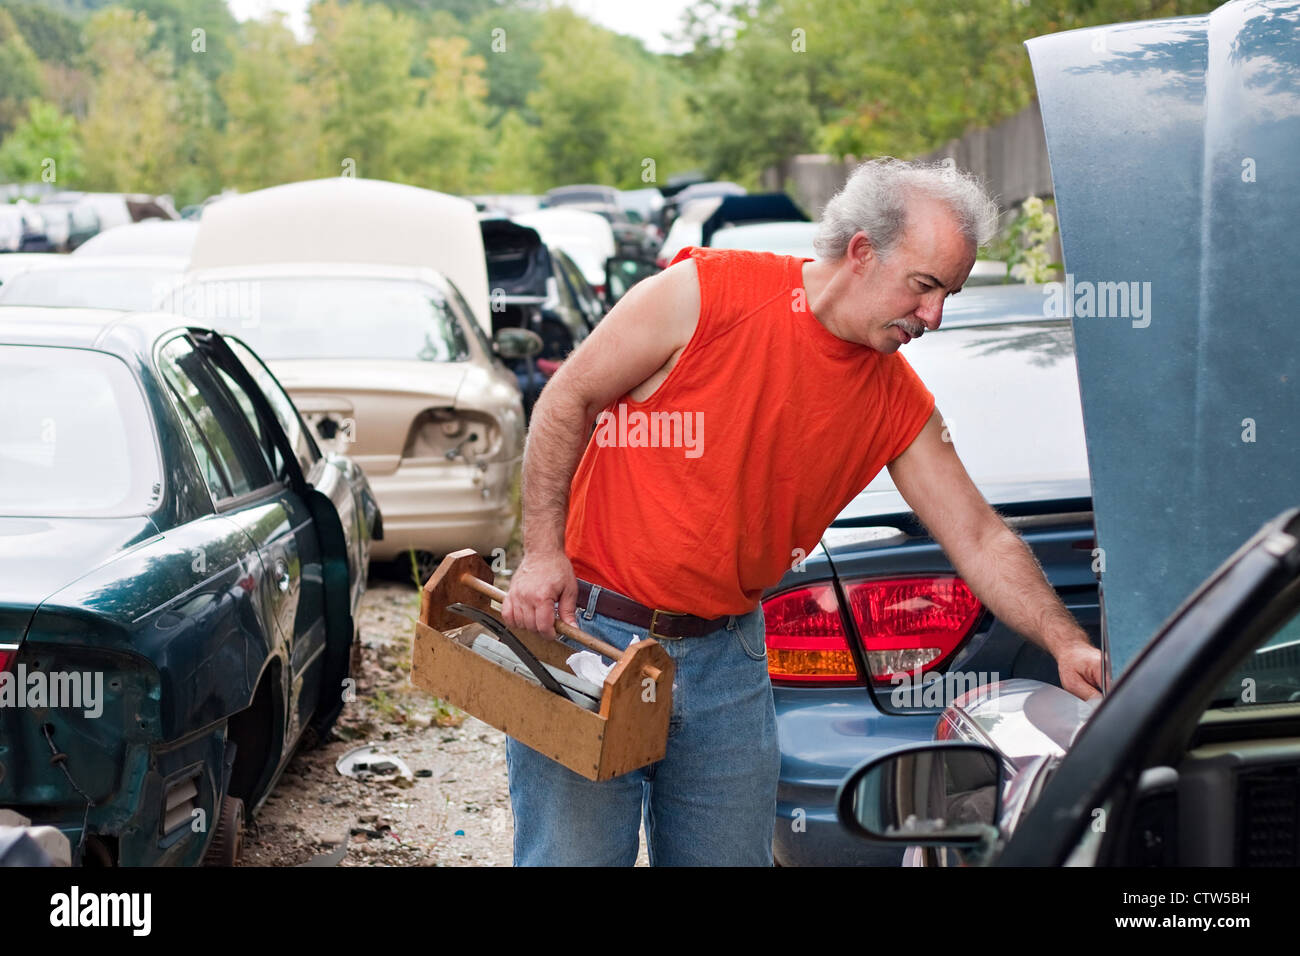 A man browses for car parts on decommissioned used cars at an ...